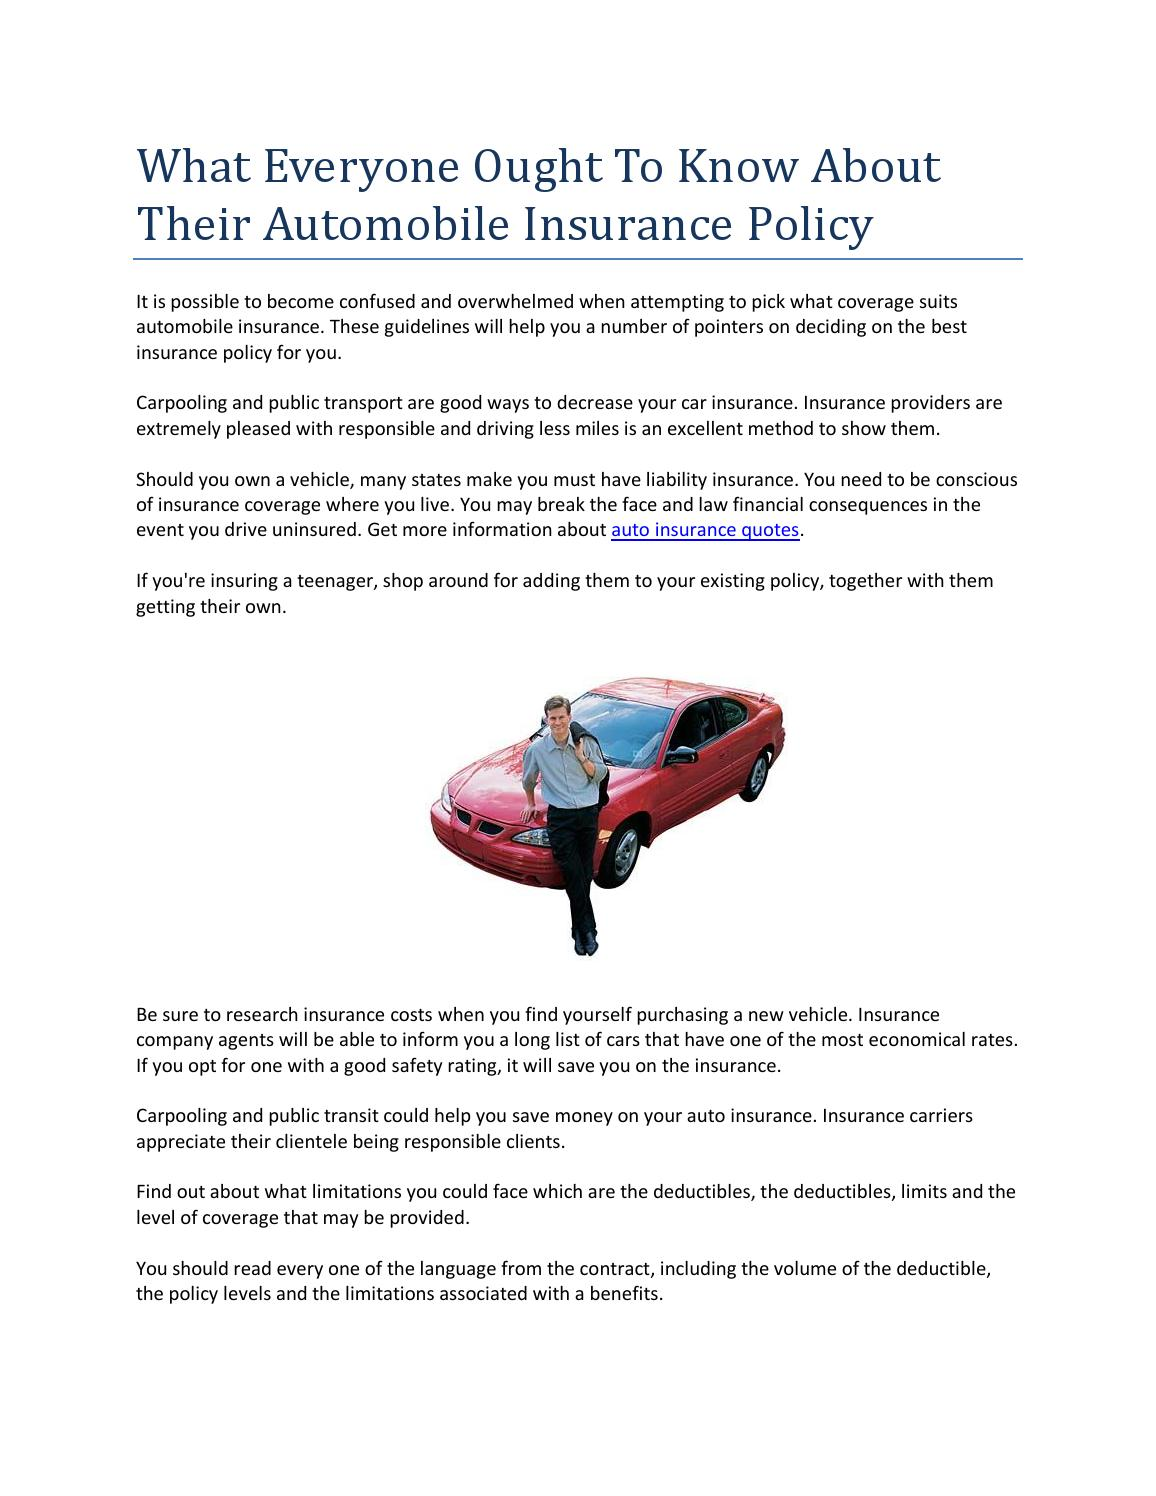 Auto Insurance Quotes By Polash Islam Issuu - Car show insurance coverage